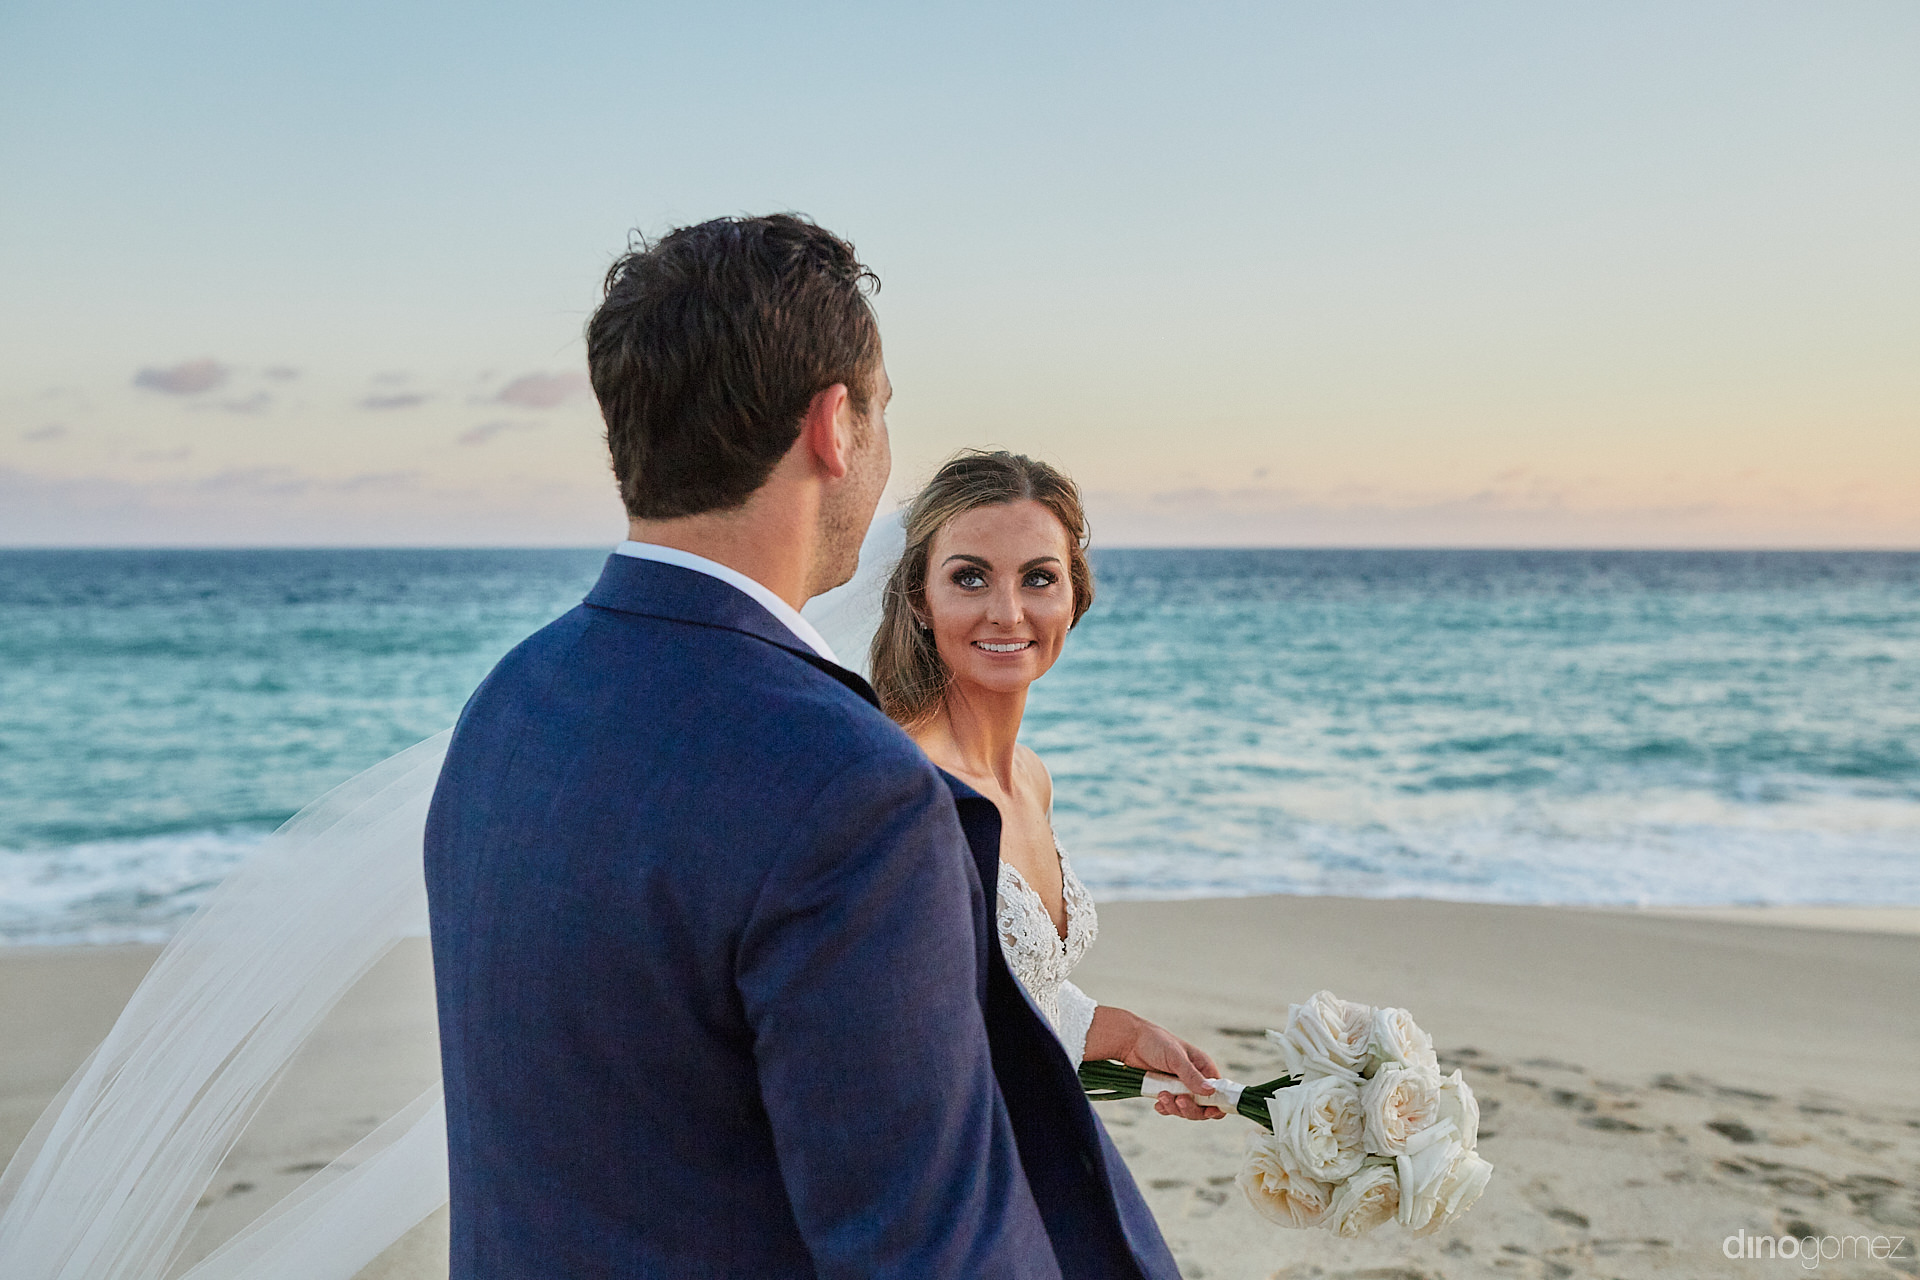 Photographers In Cabo San Lucas - Luxury Wedding Photographer In Cabo Dino Gomez - C&T